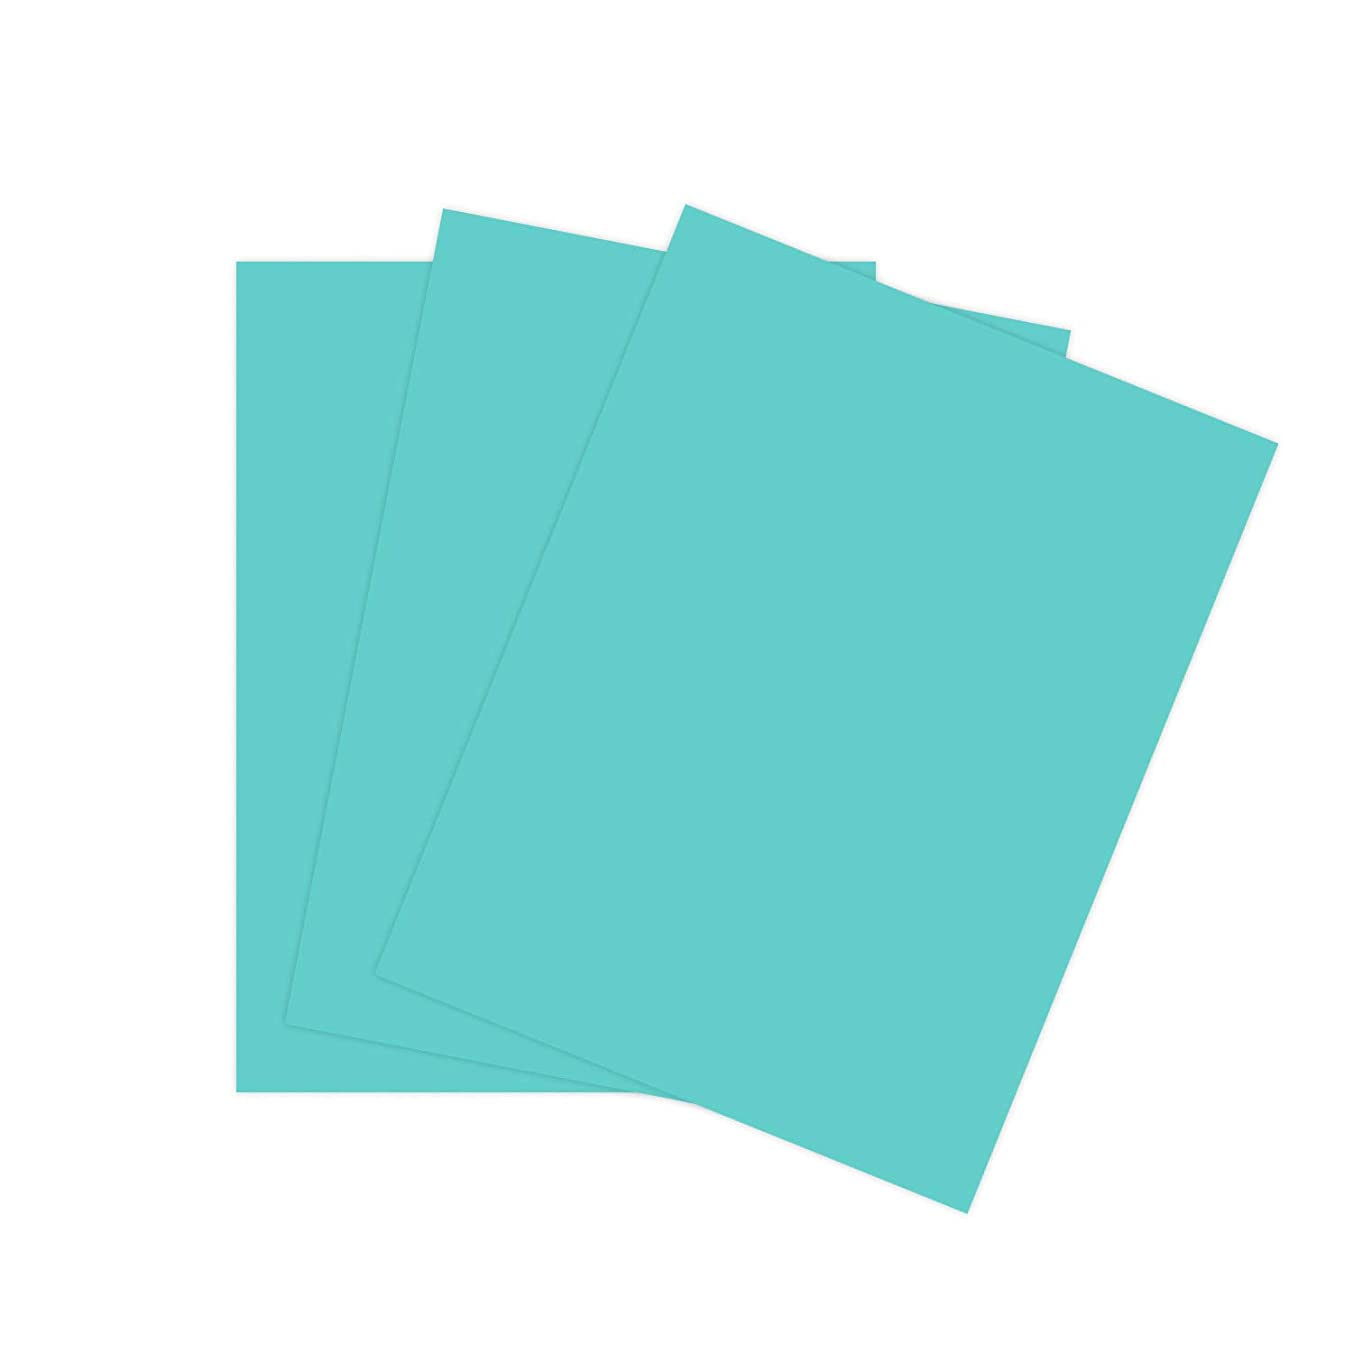 Cardstock Scrapbooking Paper by The Stamps of Life - Ocean Blue 8.5